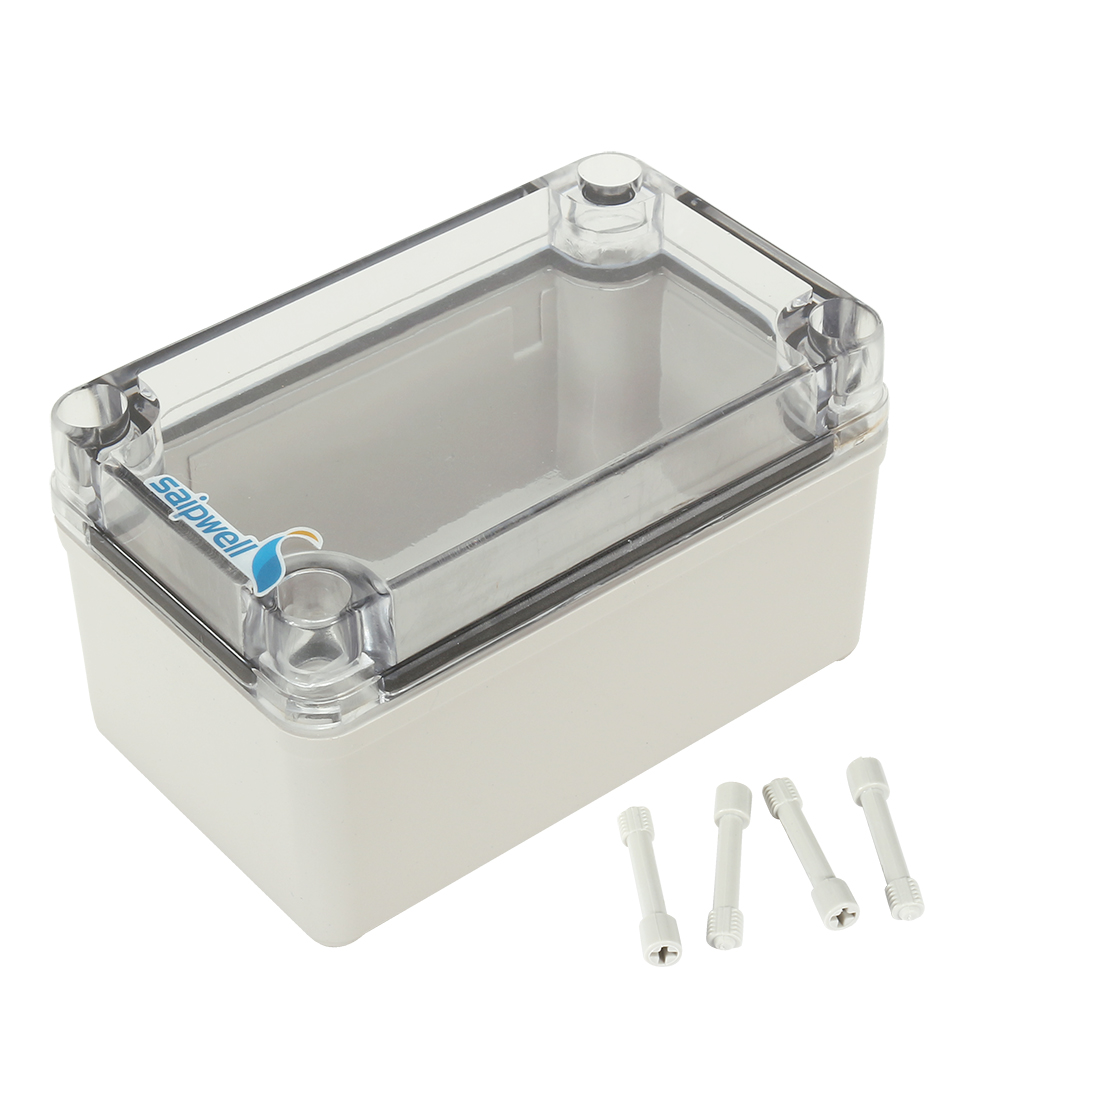 """3.2""""x5.1""""x2.8""""(80mmx130mmx70mm) ABS Junction Box Universal Project Enclosure w PC Transparent Cover"""